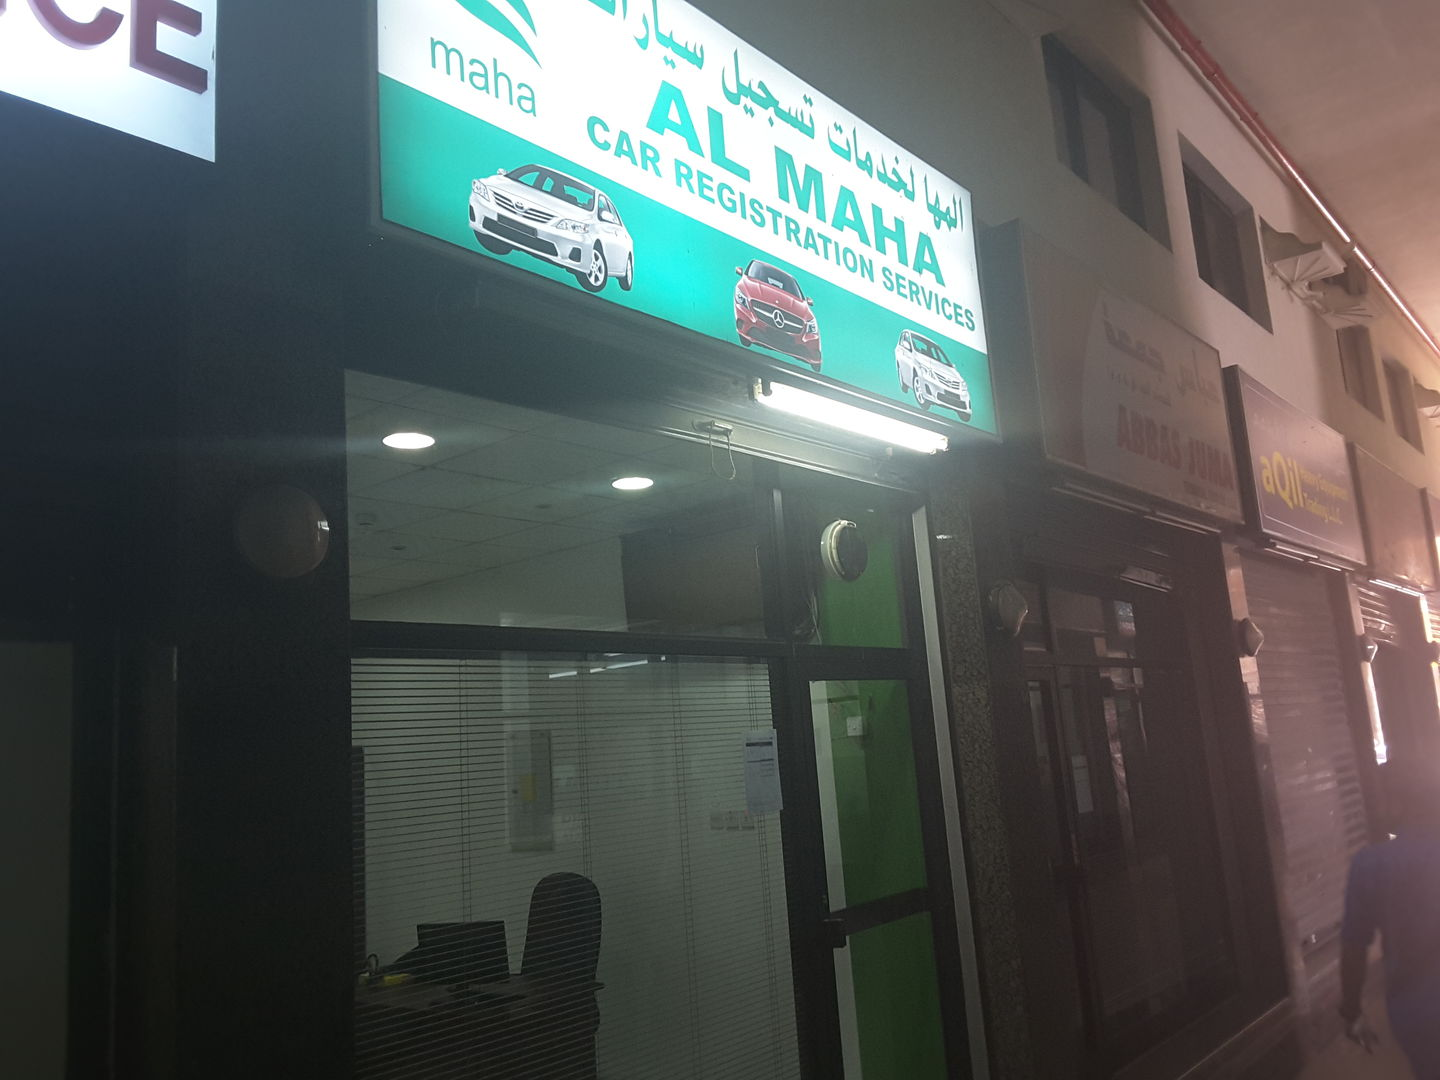 HiDubai-business-almaha-car-registration-services-transport-vehicle-services-car-inspection-registration-meena-bazar-al-souq-al-kabeer-dubai-2